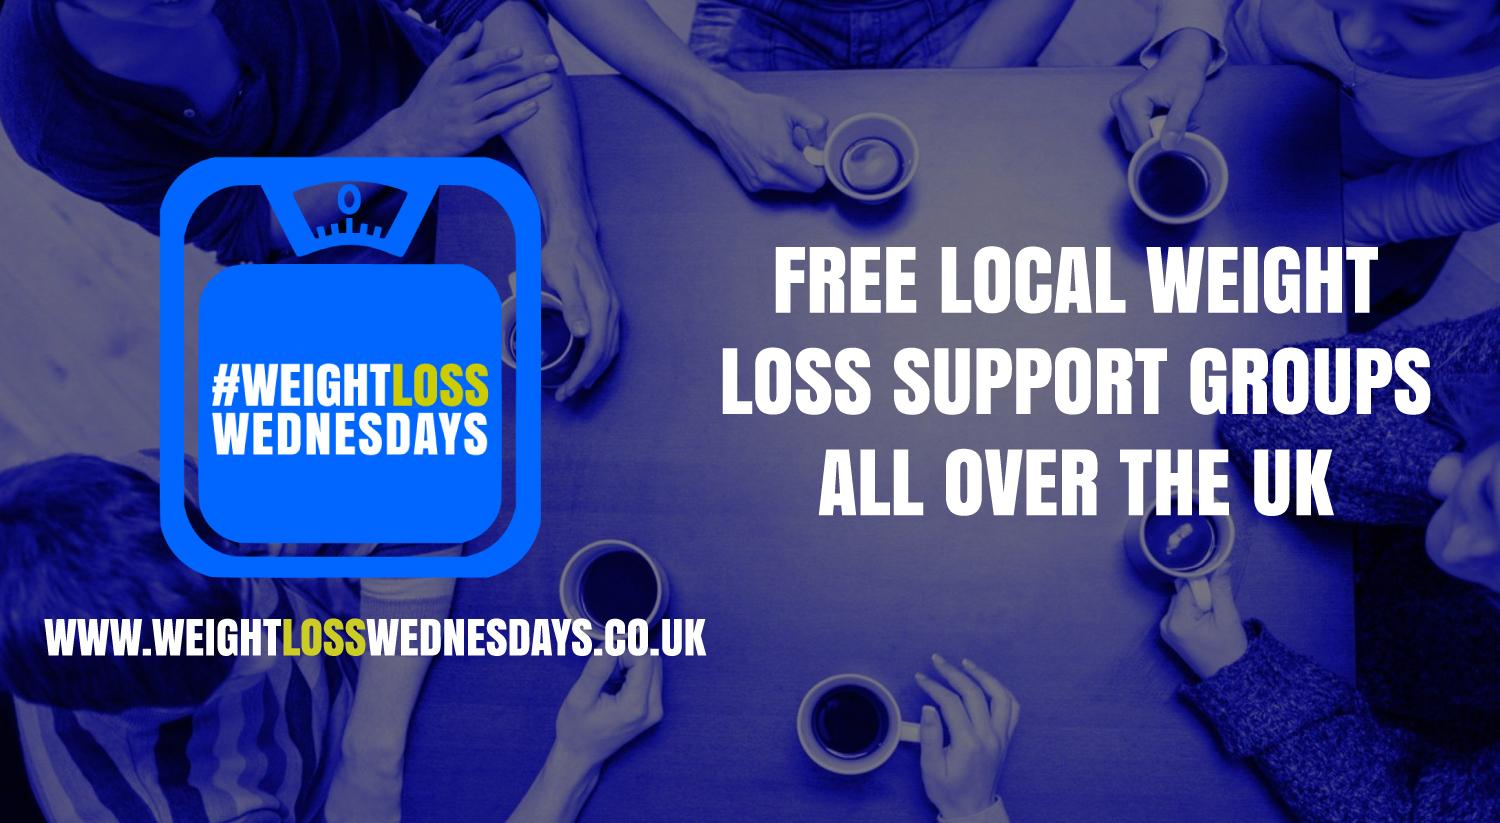 WEIGHT LOSS WEDNESDAYS! Free weekly support group in Paisley